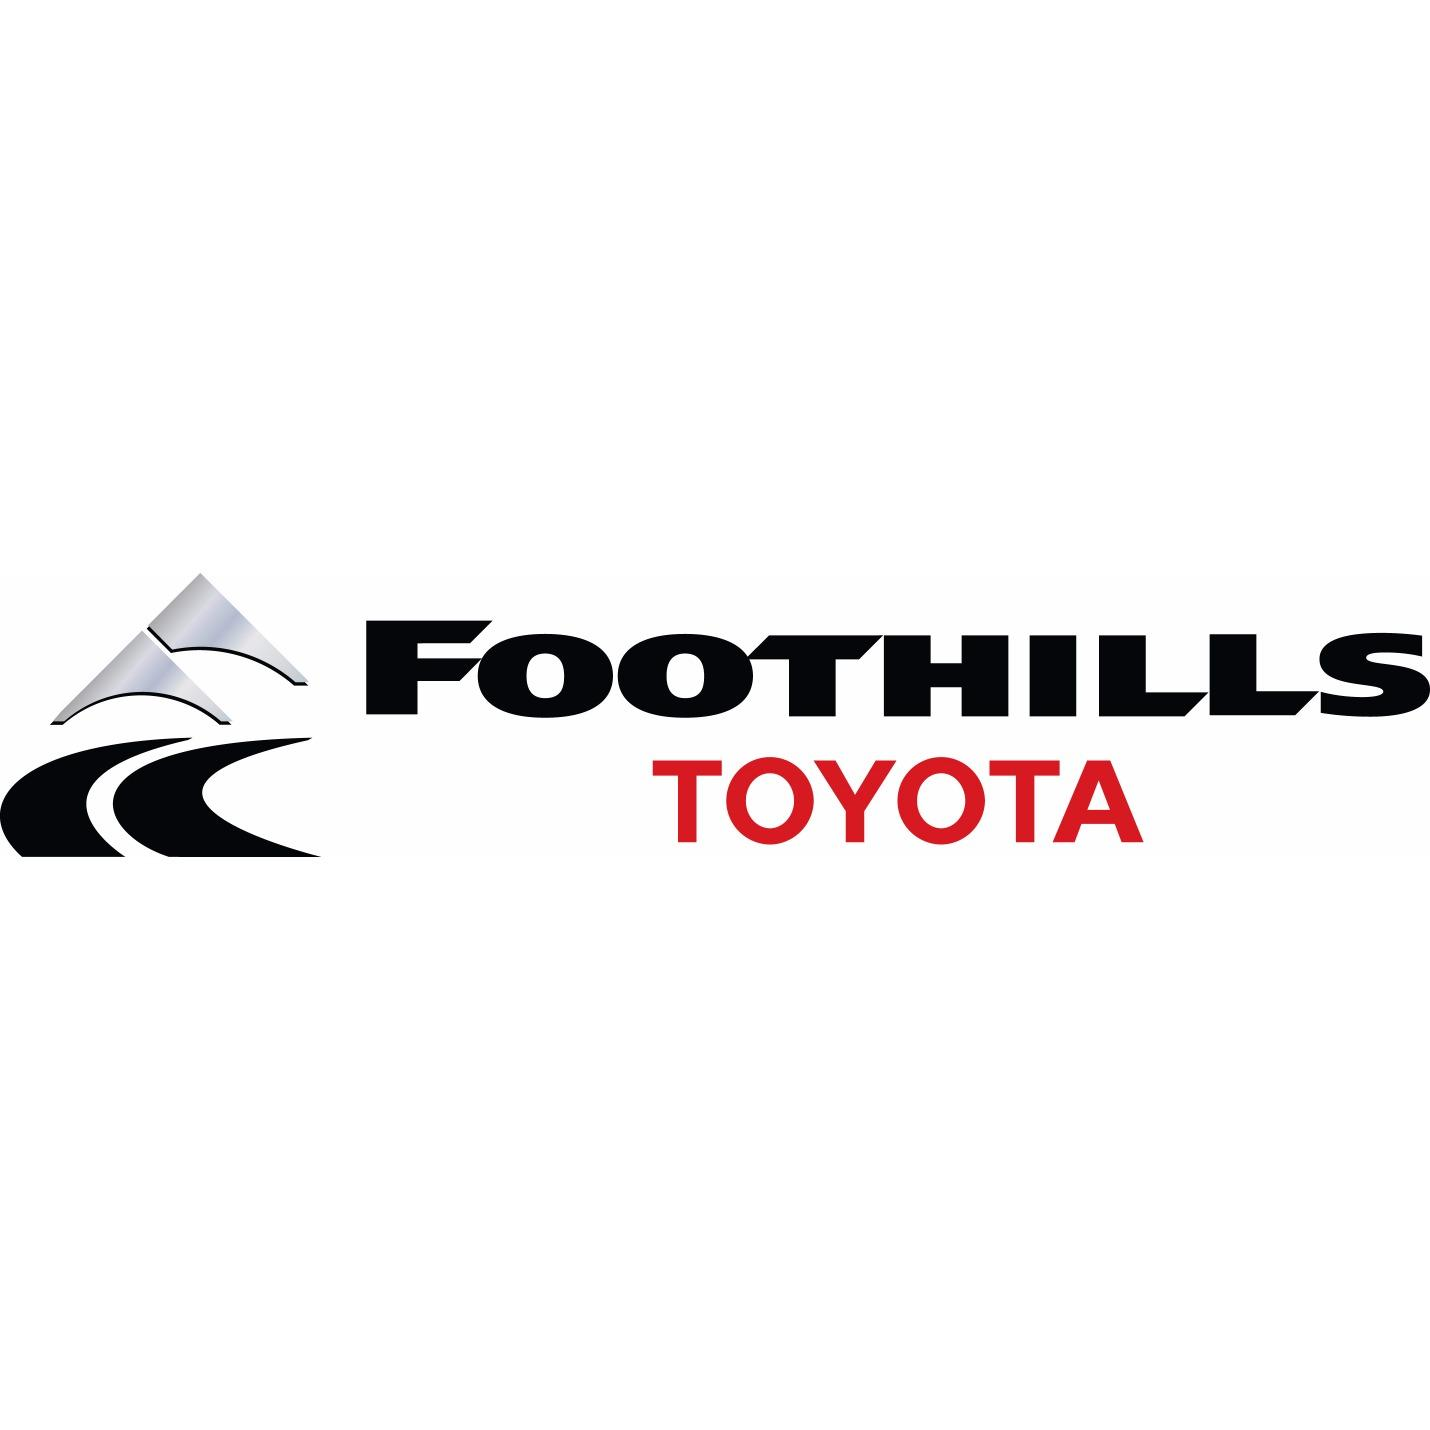 Marhaba Meet And Greet Service: Toyota Foothills Service